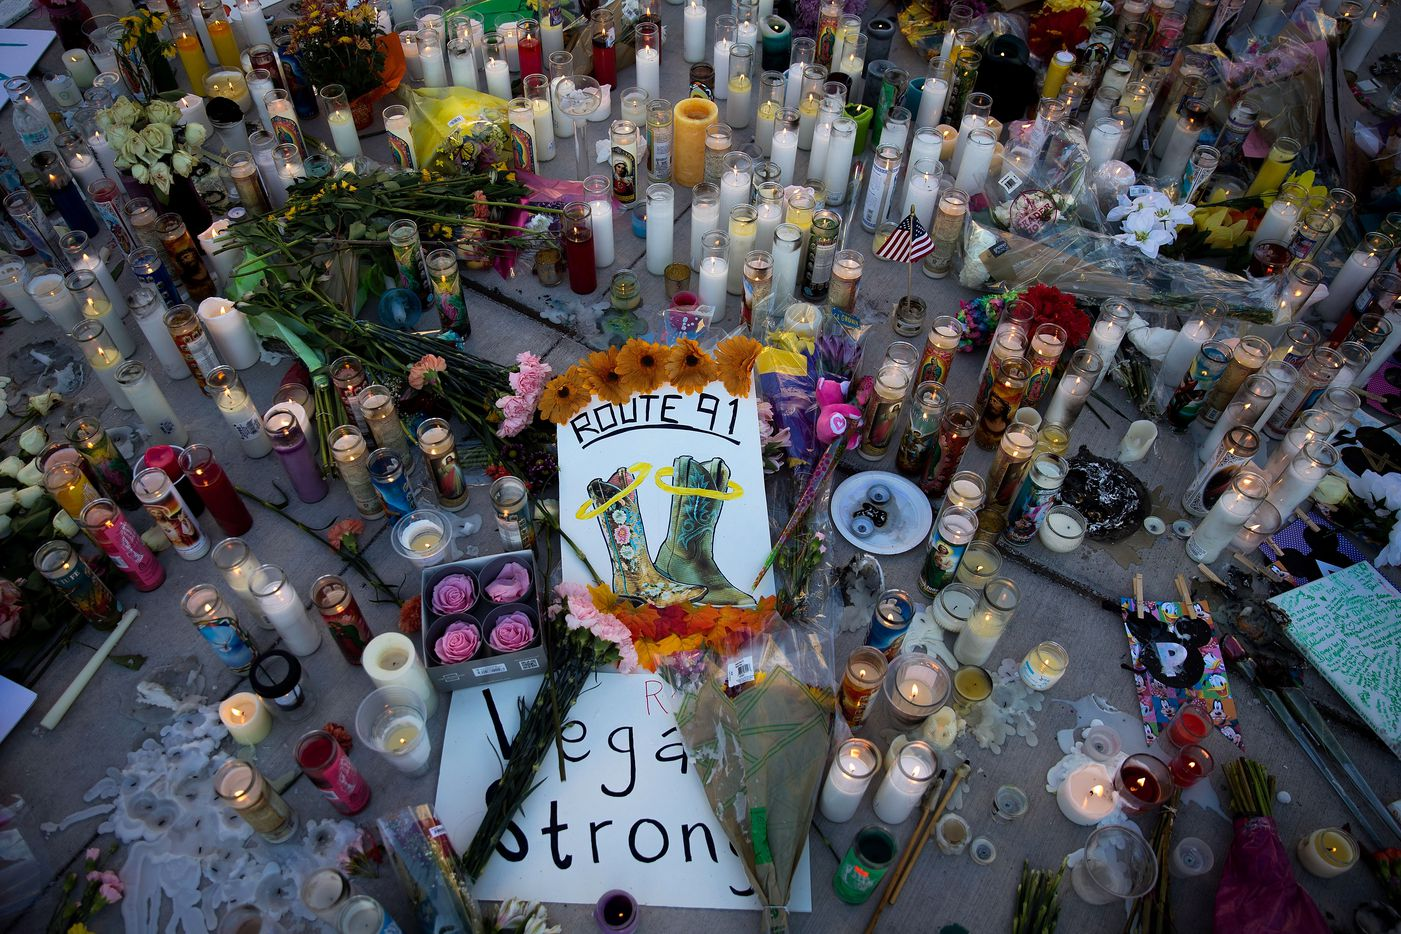 LAS VEGAS, NV - OCTOBER 3: A makeshift memorial for the victims of Sunday night's mass shooting stands at an intersection of the north end of the Las Vegas Strip, October 3, 2017 in Las Vegas, Nevada. The gunman, identified as Stephen Paddock, 64, of Mesquite, Nevada, allegedly opened fire from a room on the 32nd floor of the Mandalay Bay Resort and Casino on the music festival, leaving at least 58 people dead and over 500 injured. According to reports, Paddock killed himself at the scene. The massacre is one of the deadliest mass shooting events in U.S. history. (Photo by Drew Angerer/Getty Images)